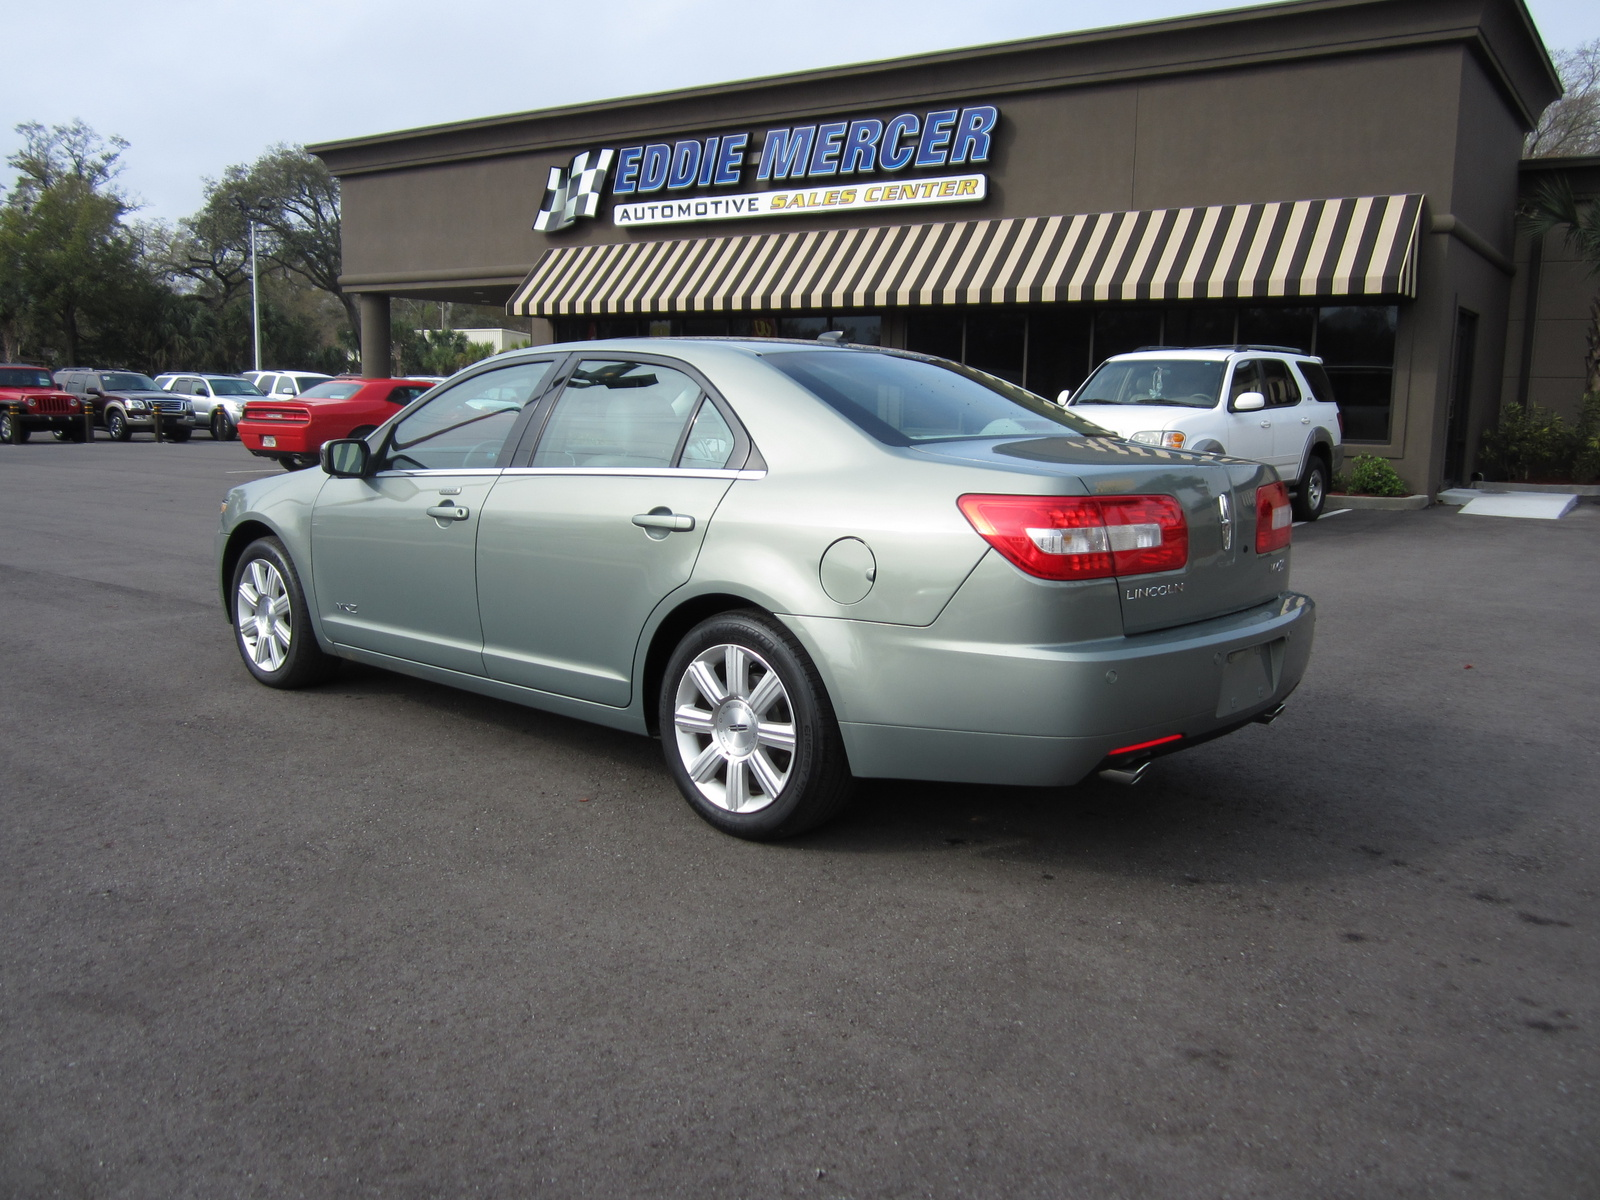 2008 Lincoln MKZ - Exterior Pictures - CarGurus